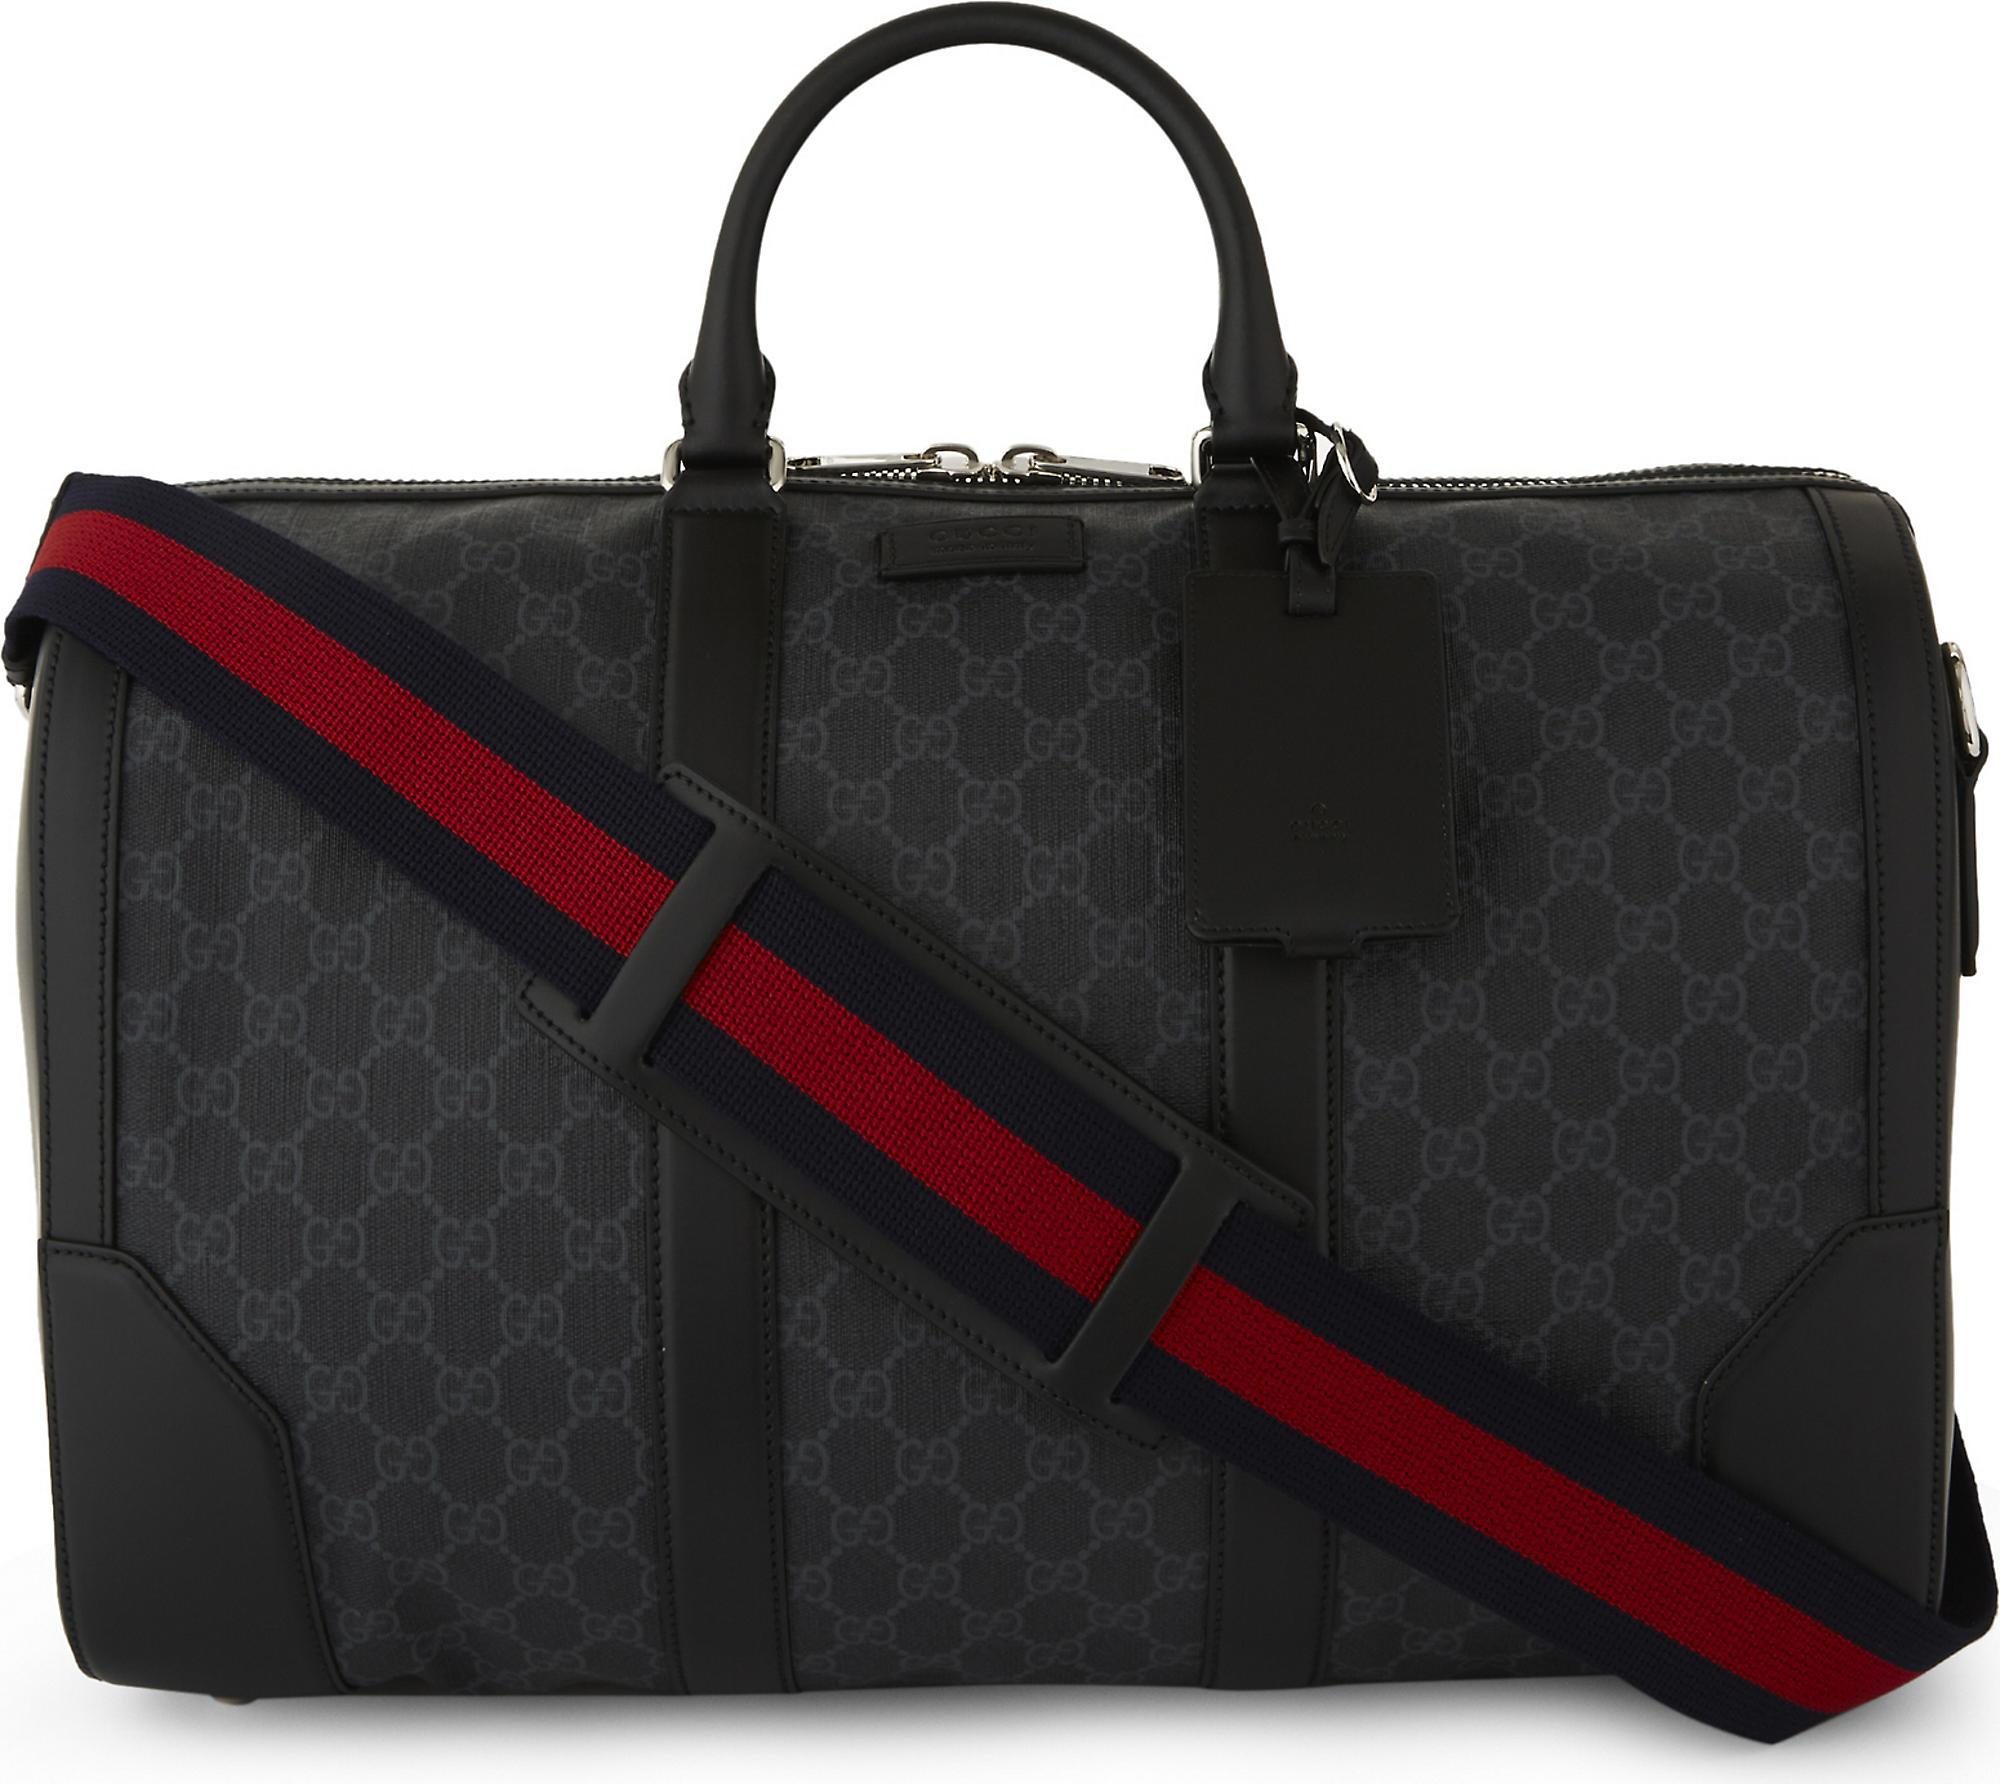 ff5334a25fc024 Gucci Supreme Canvas And Leather Duffle Bag in Black for Men - Lyst